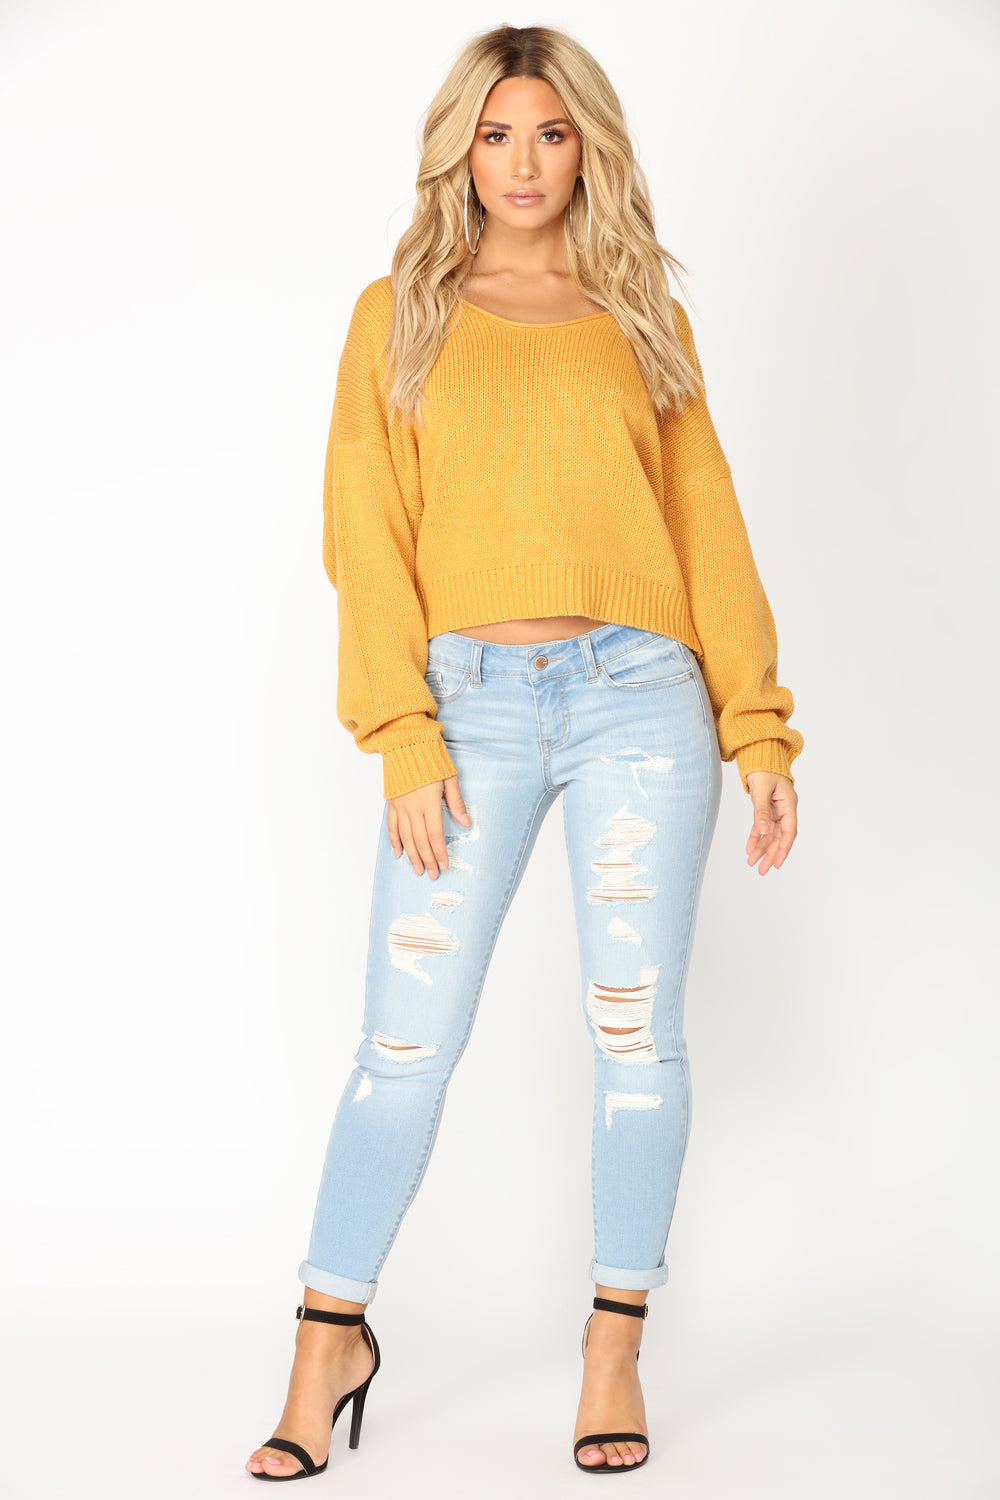 Hyde Lona Sleeve Sweater - Mustard